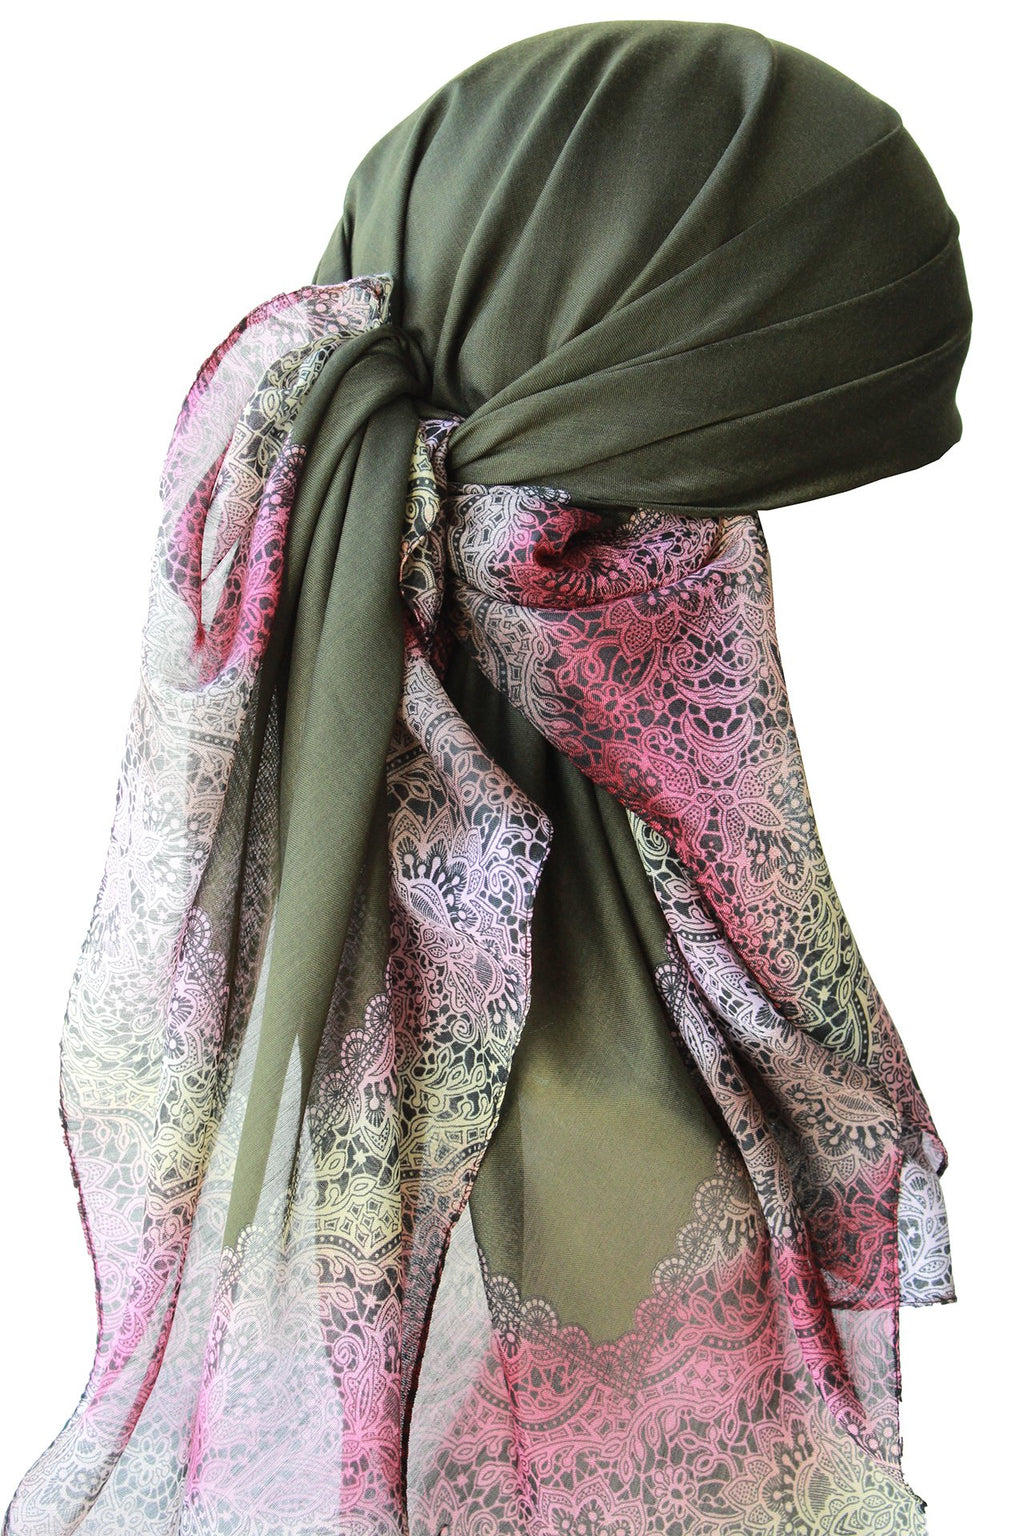 Deresina Everyday square chemo headscarf khaki end lace pattern